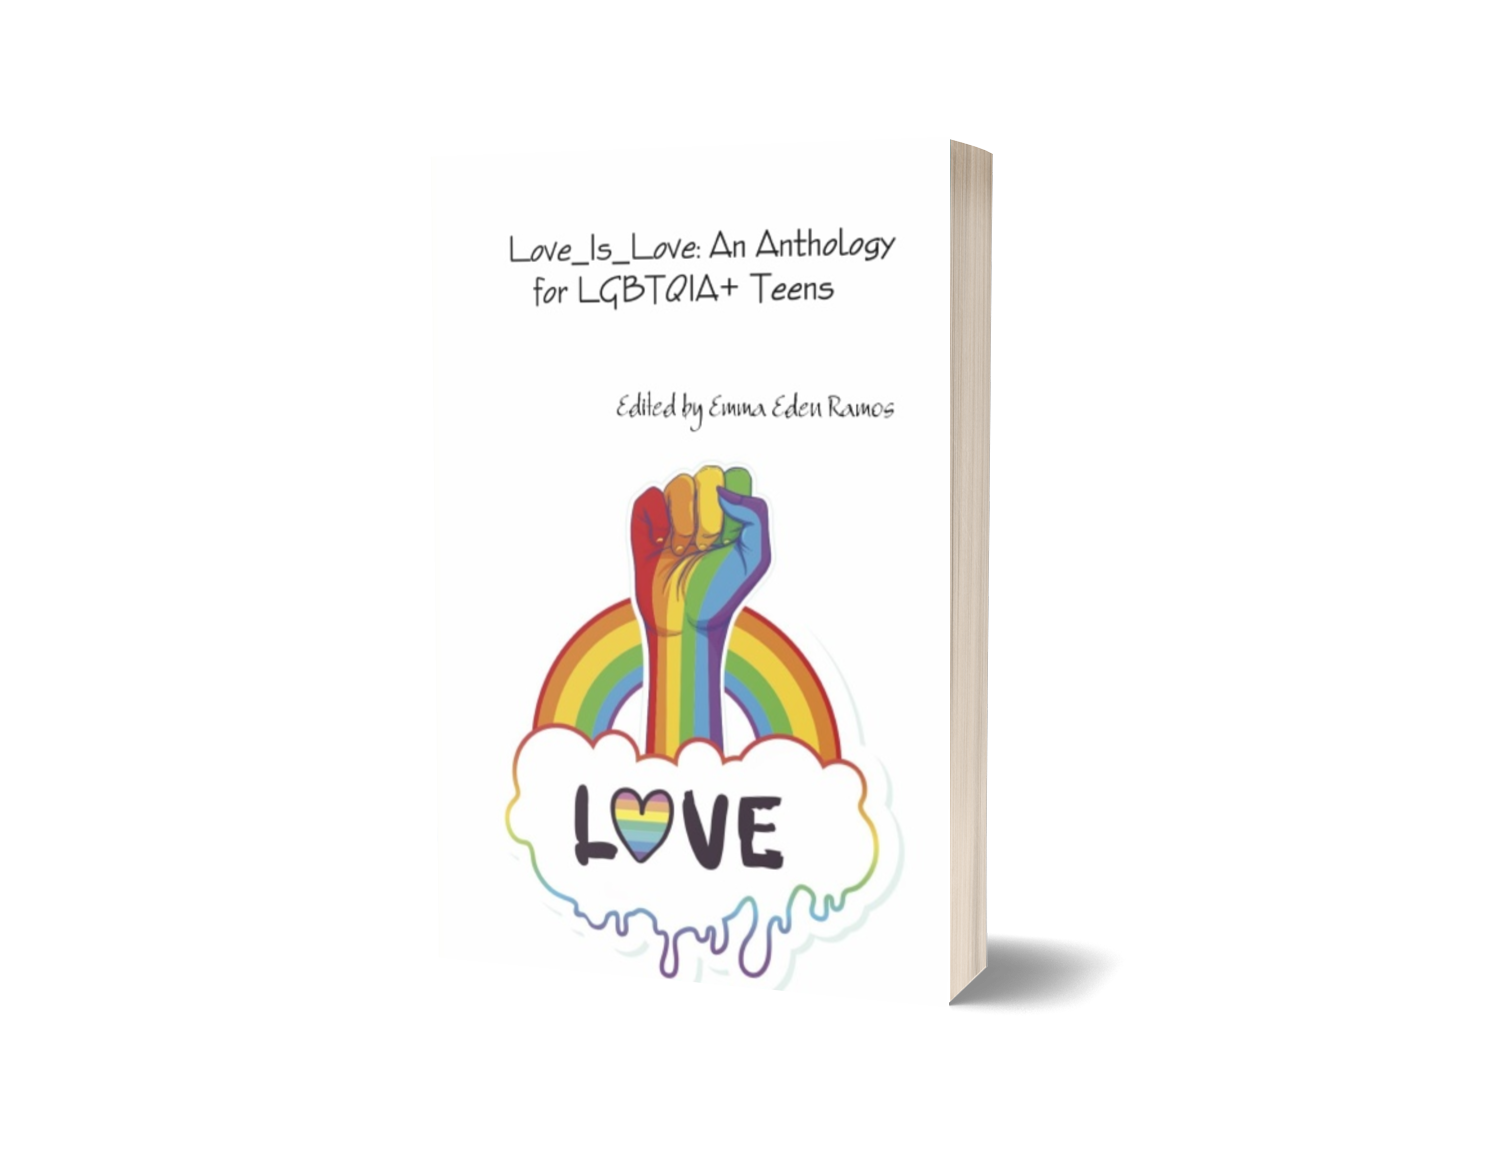 Love_Is_Love: An Anthology for LGBTQIA+ Teens